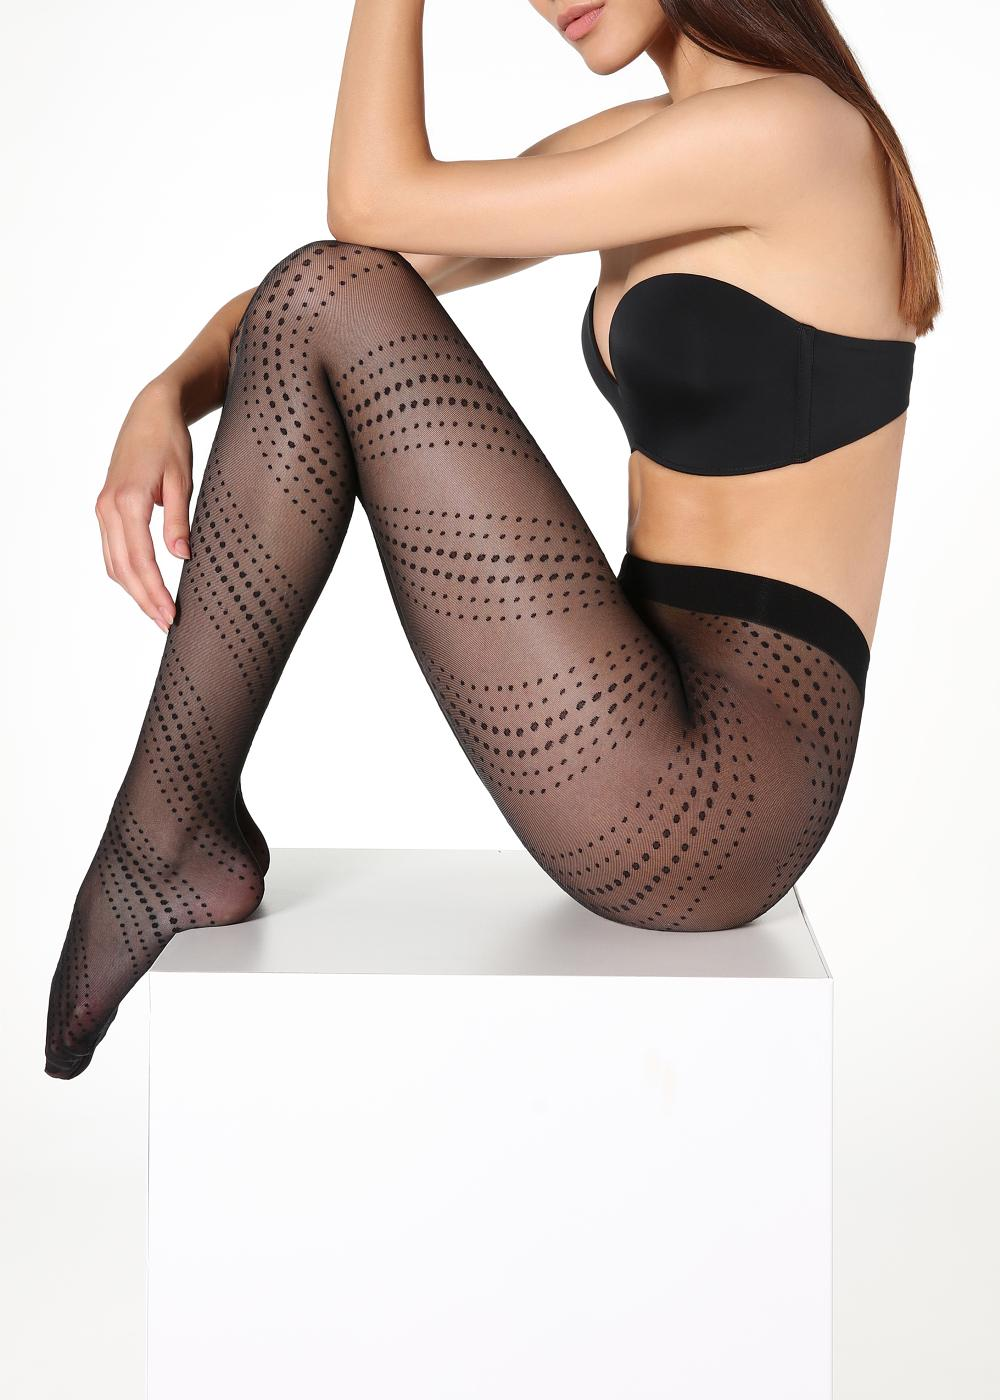 Collants à pois et spirale